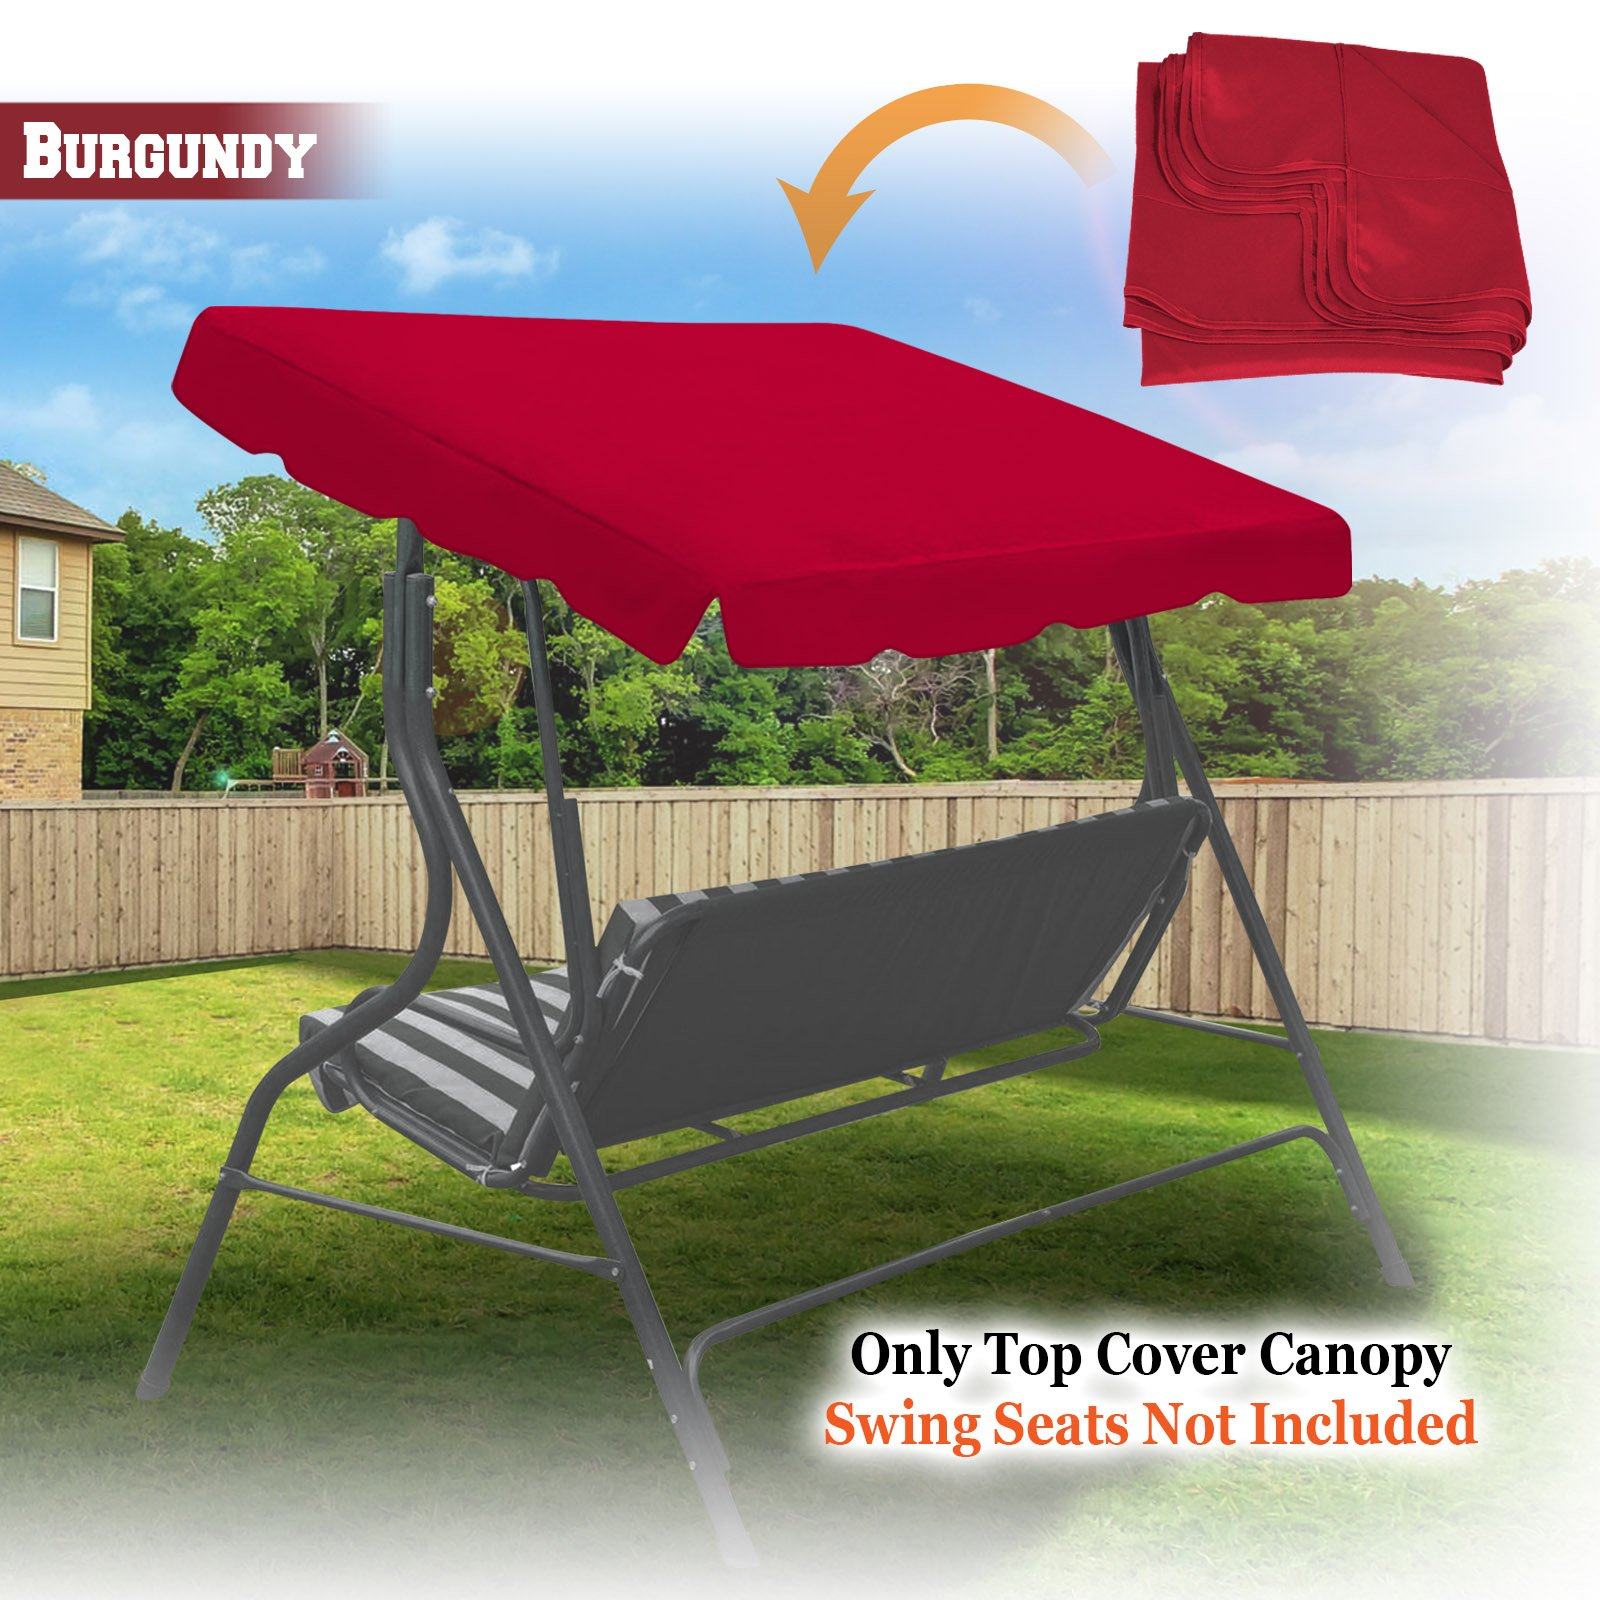 BenefitUSA Outdoor Patio Swing Canopy Replacement Porch Top Cover for Seat Furniture (77''x43'', Burgundy)